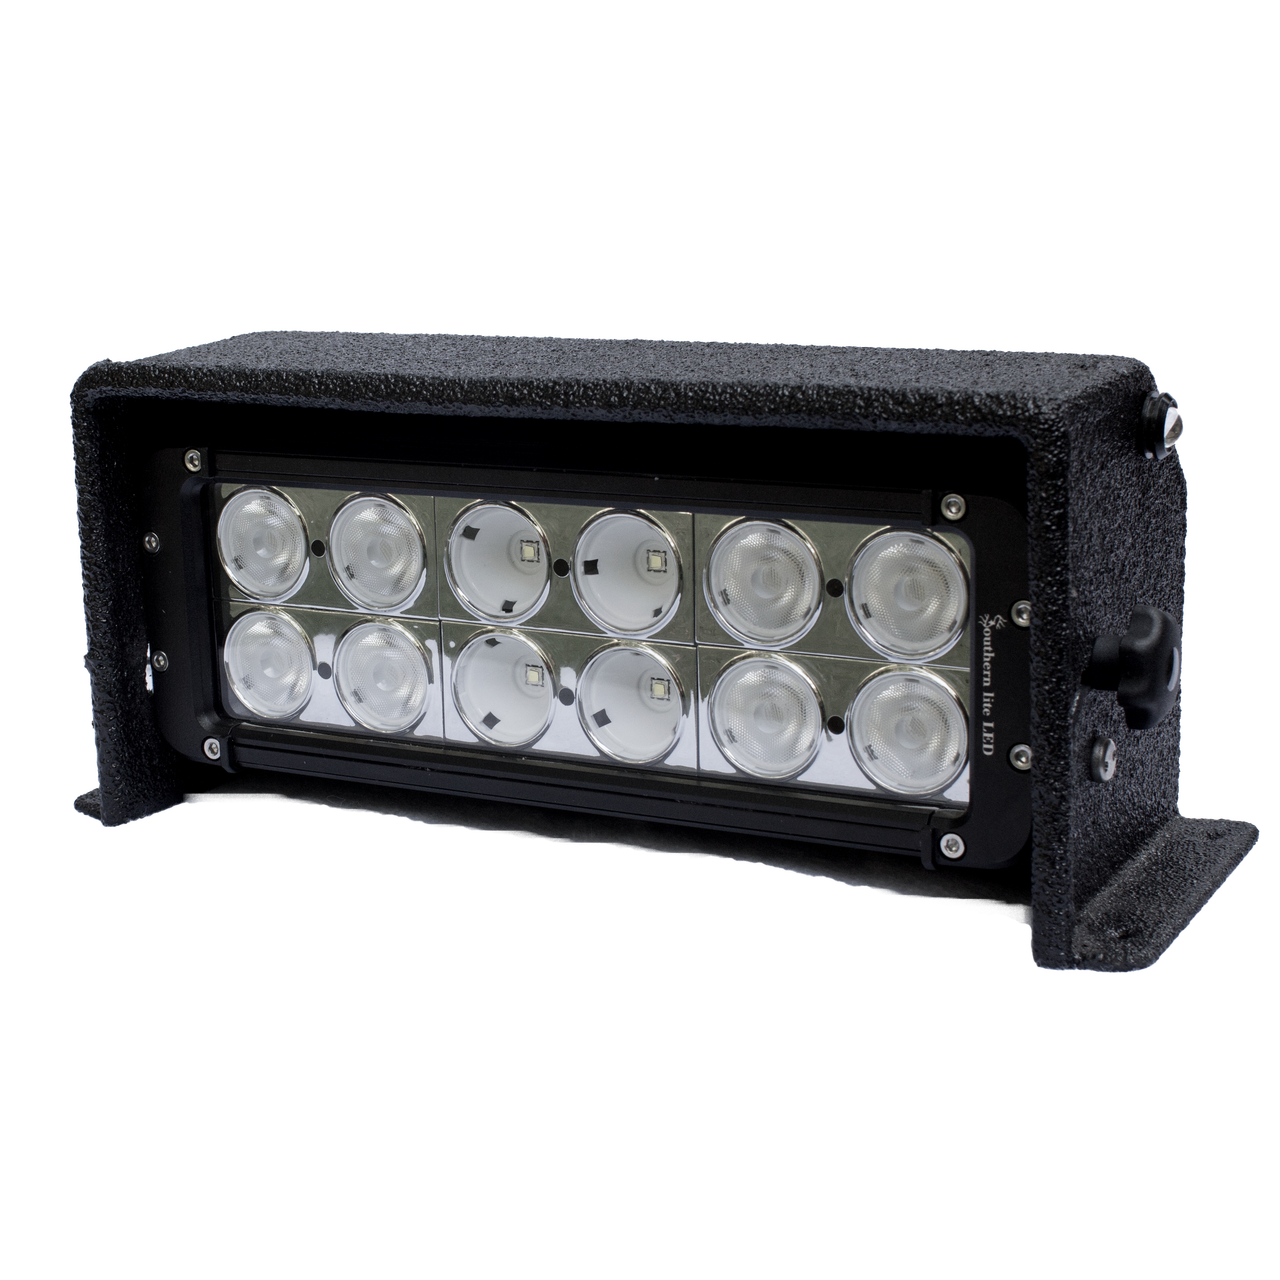 Includes Standard black housing, GEN2 dual row light bar, and mounting hardware